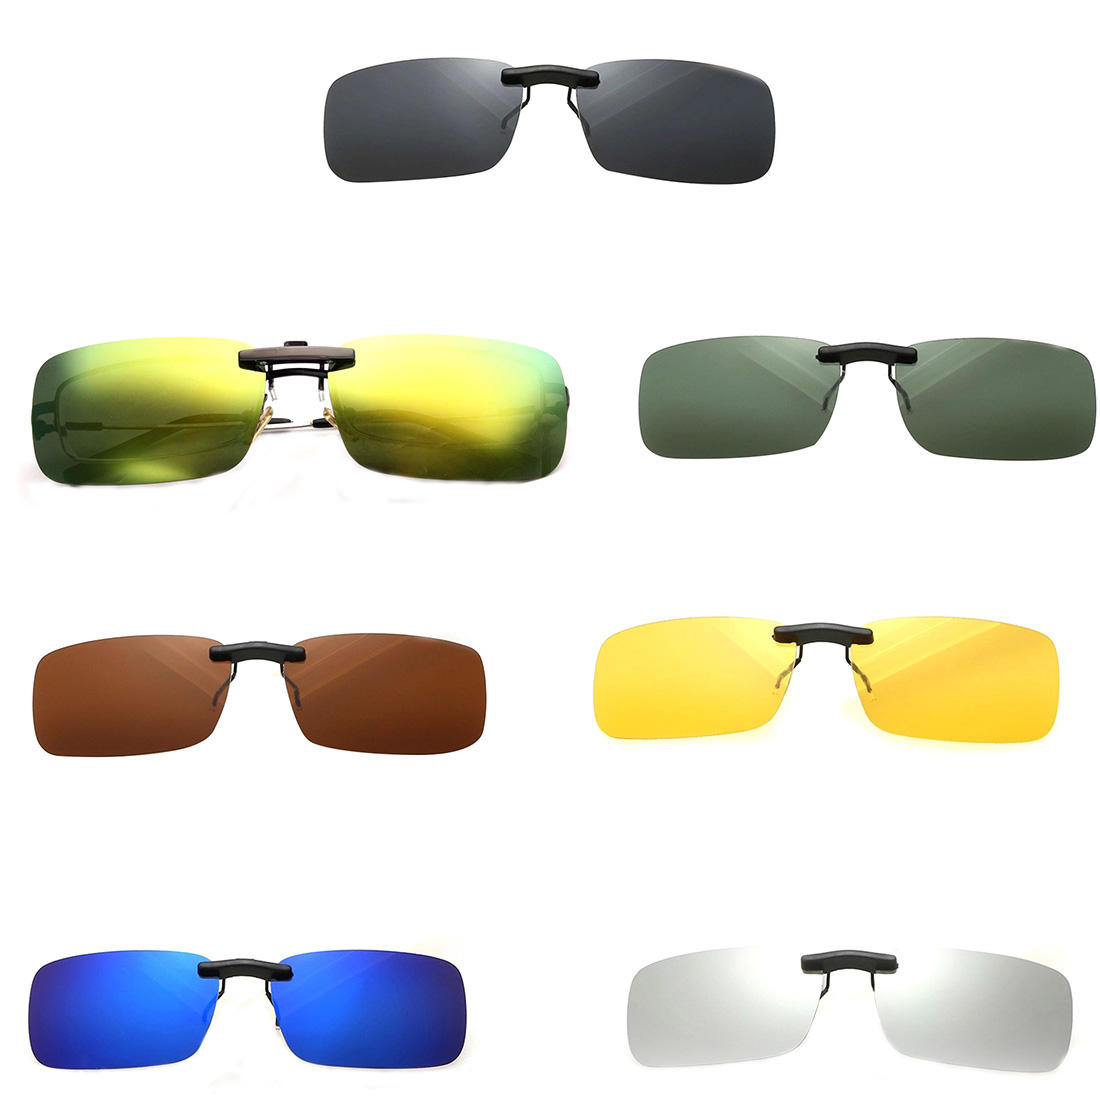 Unisex Polarized Clip On Sunglasses Near-Sighted Driving Night Vision Lens Anti-UVA Anti-UVB Cycling Riding Sunglasses Clip стоимость